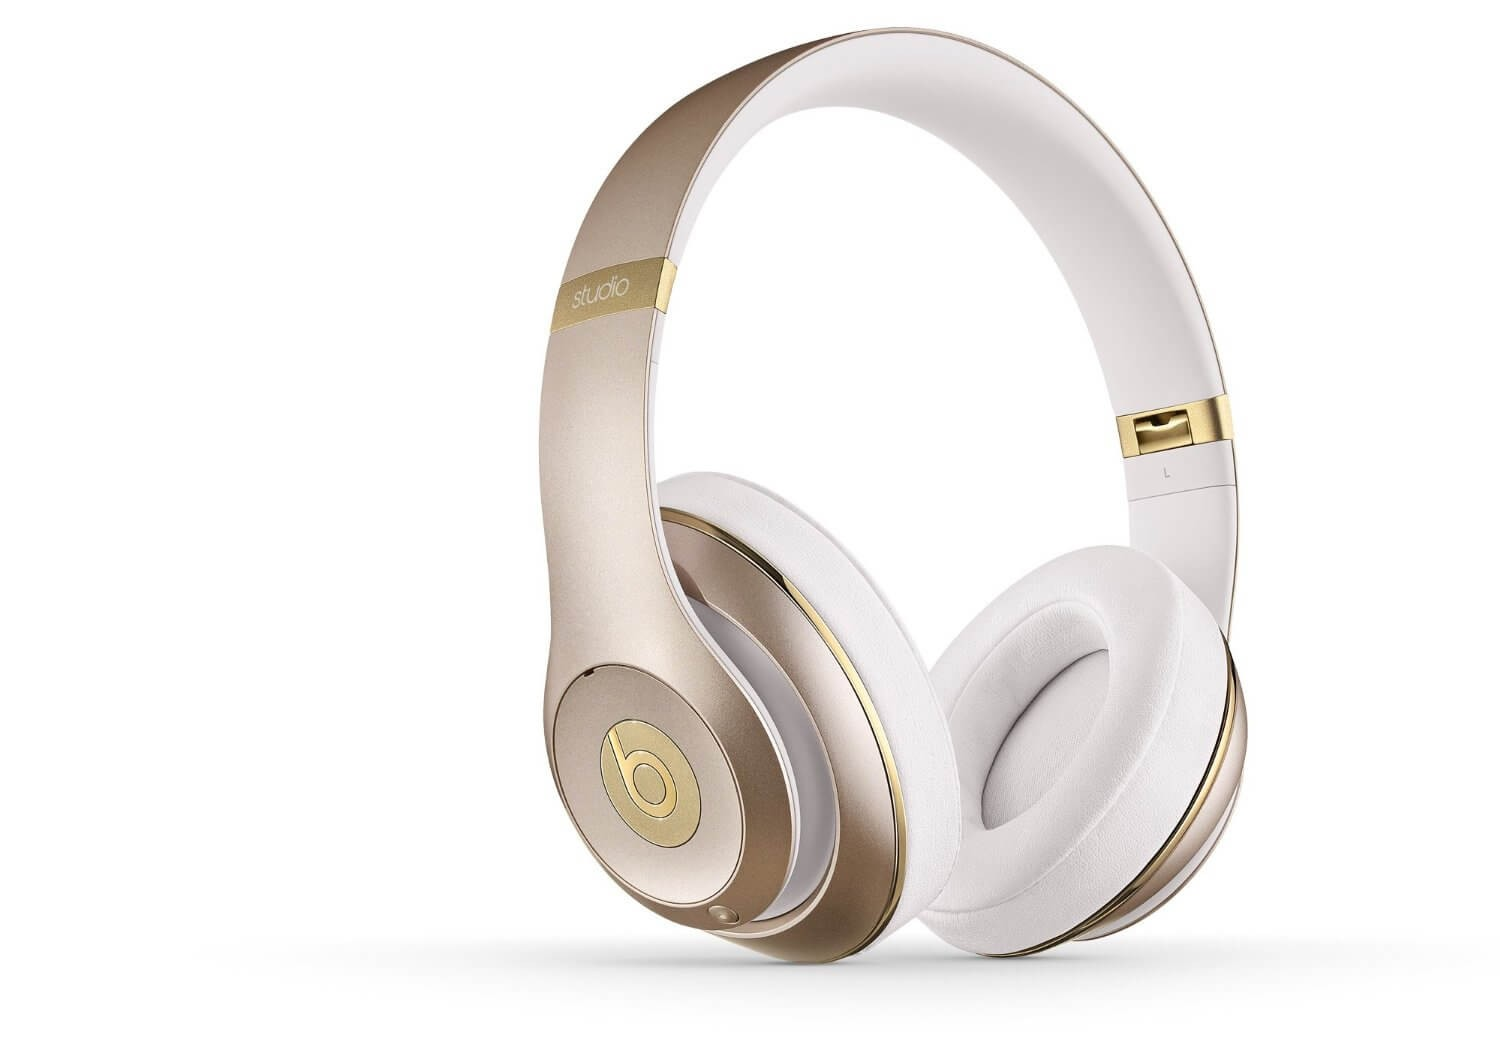 Apple Beats by Dr. Dre Studio 2 Wireless Over-Ear Headphones - Gold